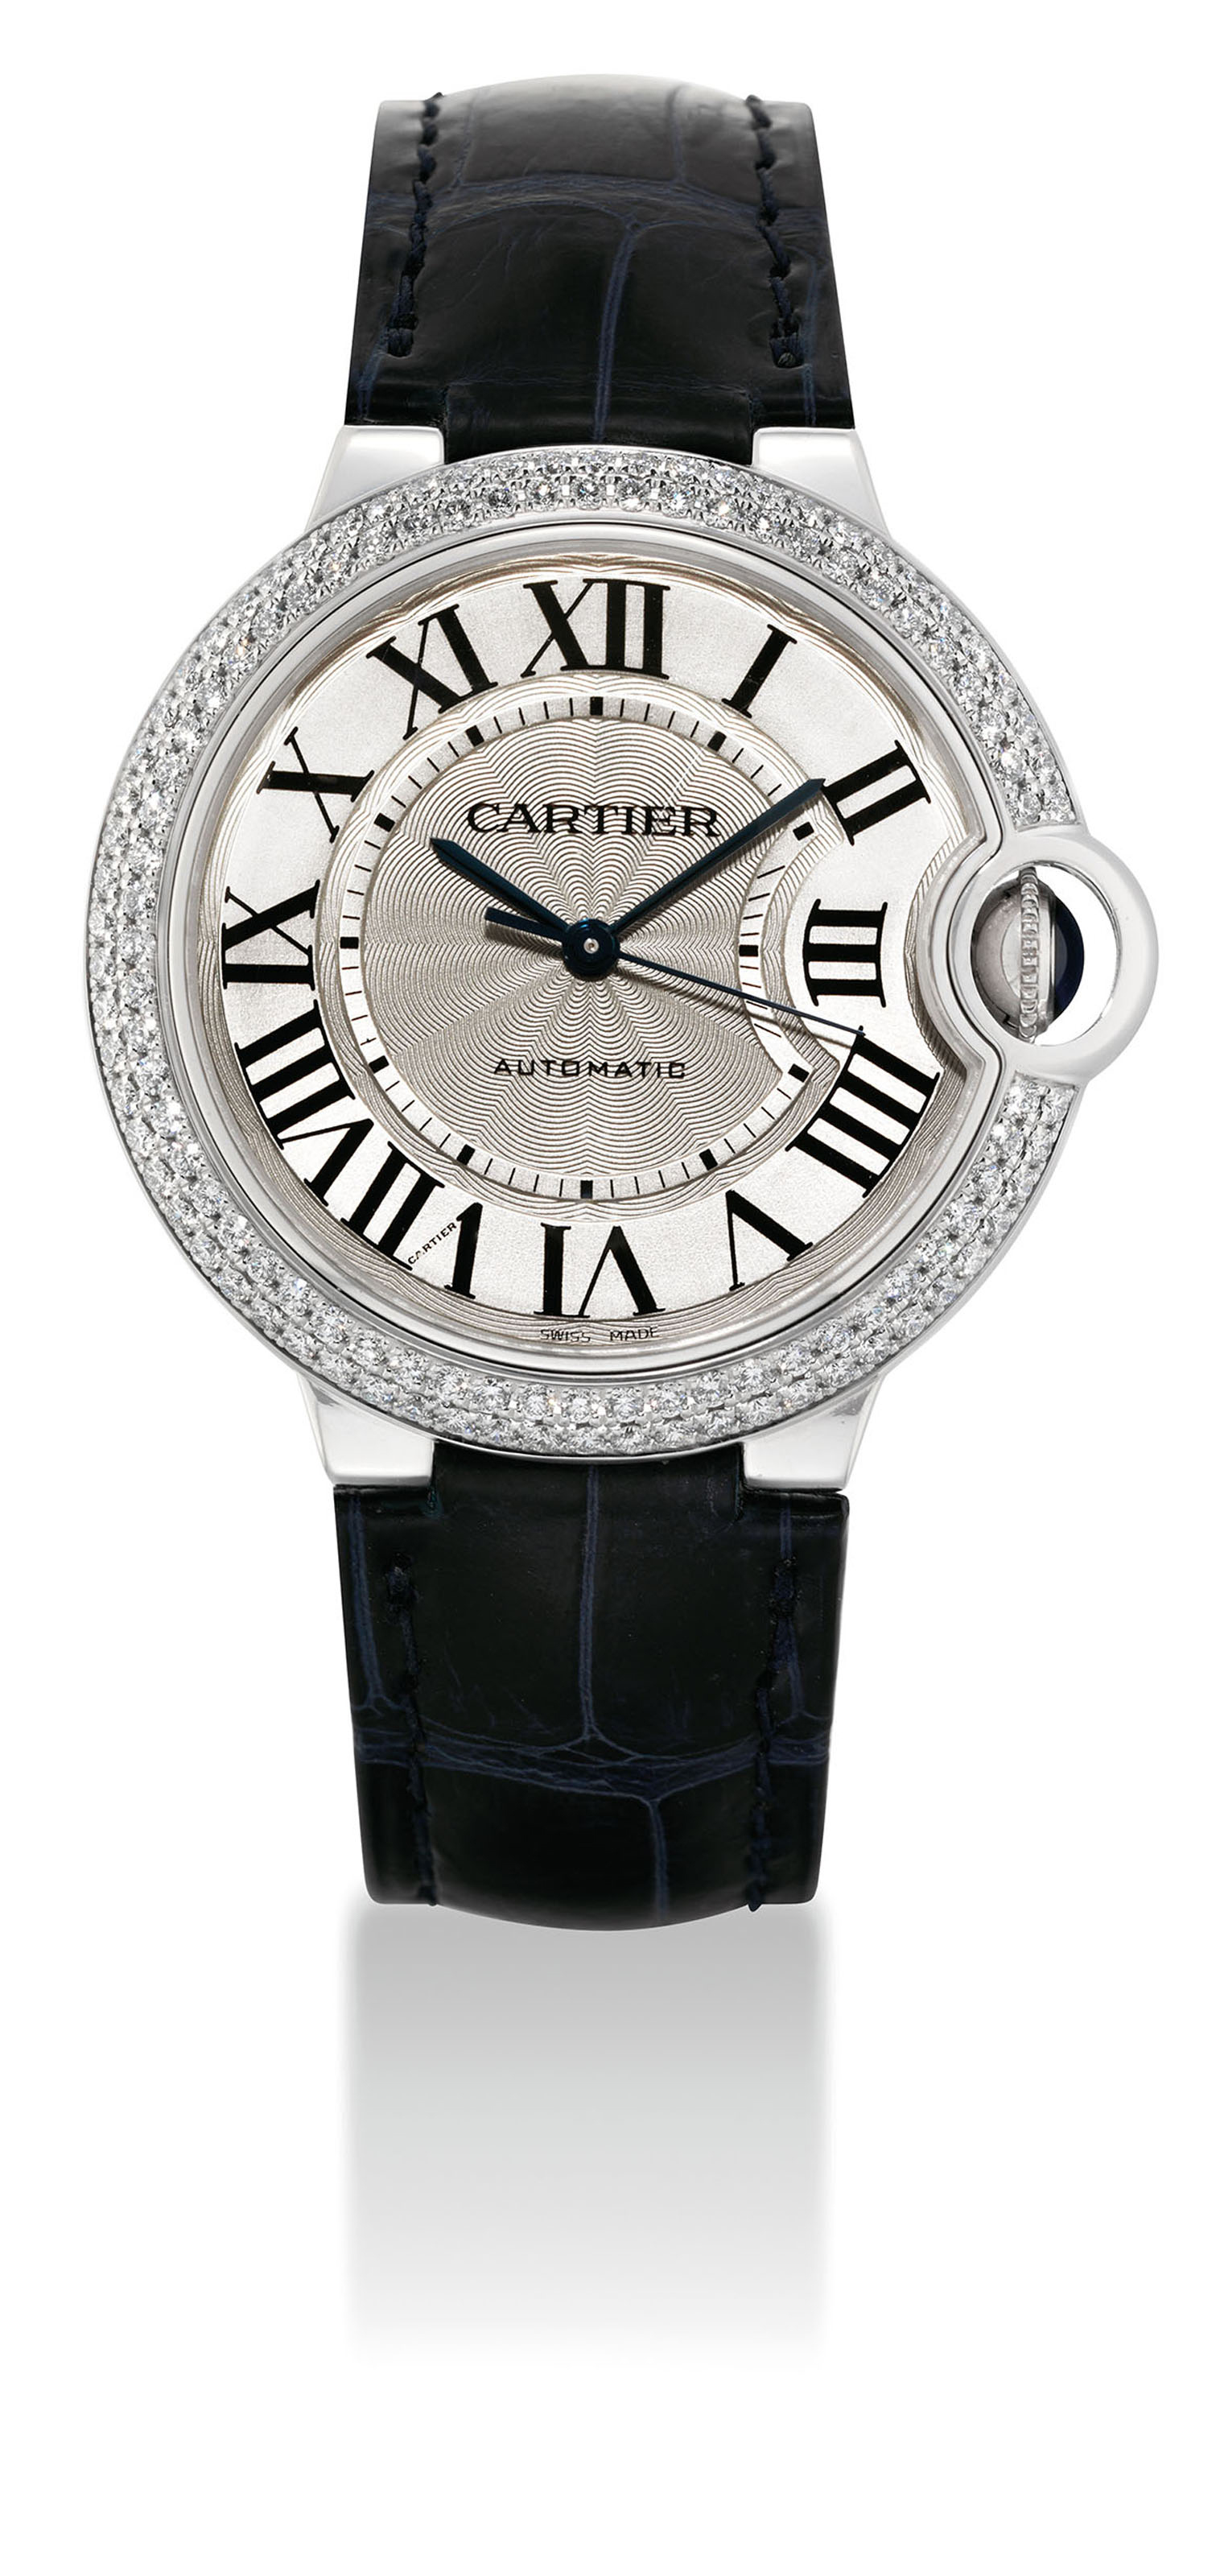 CARTIER. A FINE 18K WHITE GOLD AND DIAMOND-SET AUTOMATIC WRISTWATCH WITH SWEEP CENTRE SECONDS